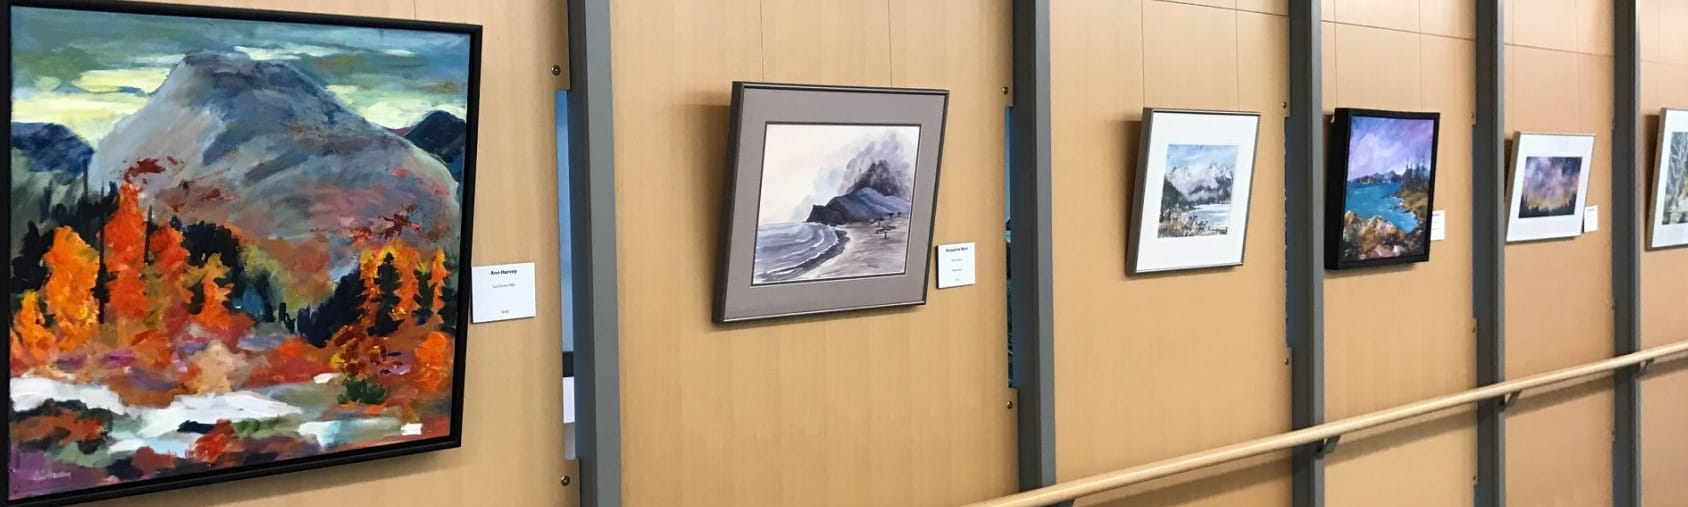 Exhibit of local artists at City Hall.